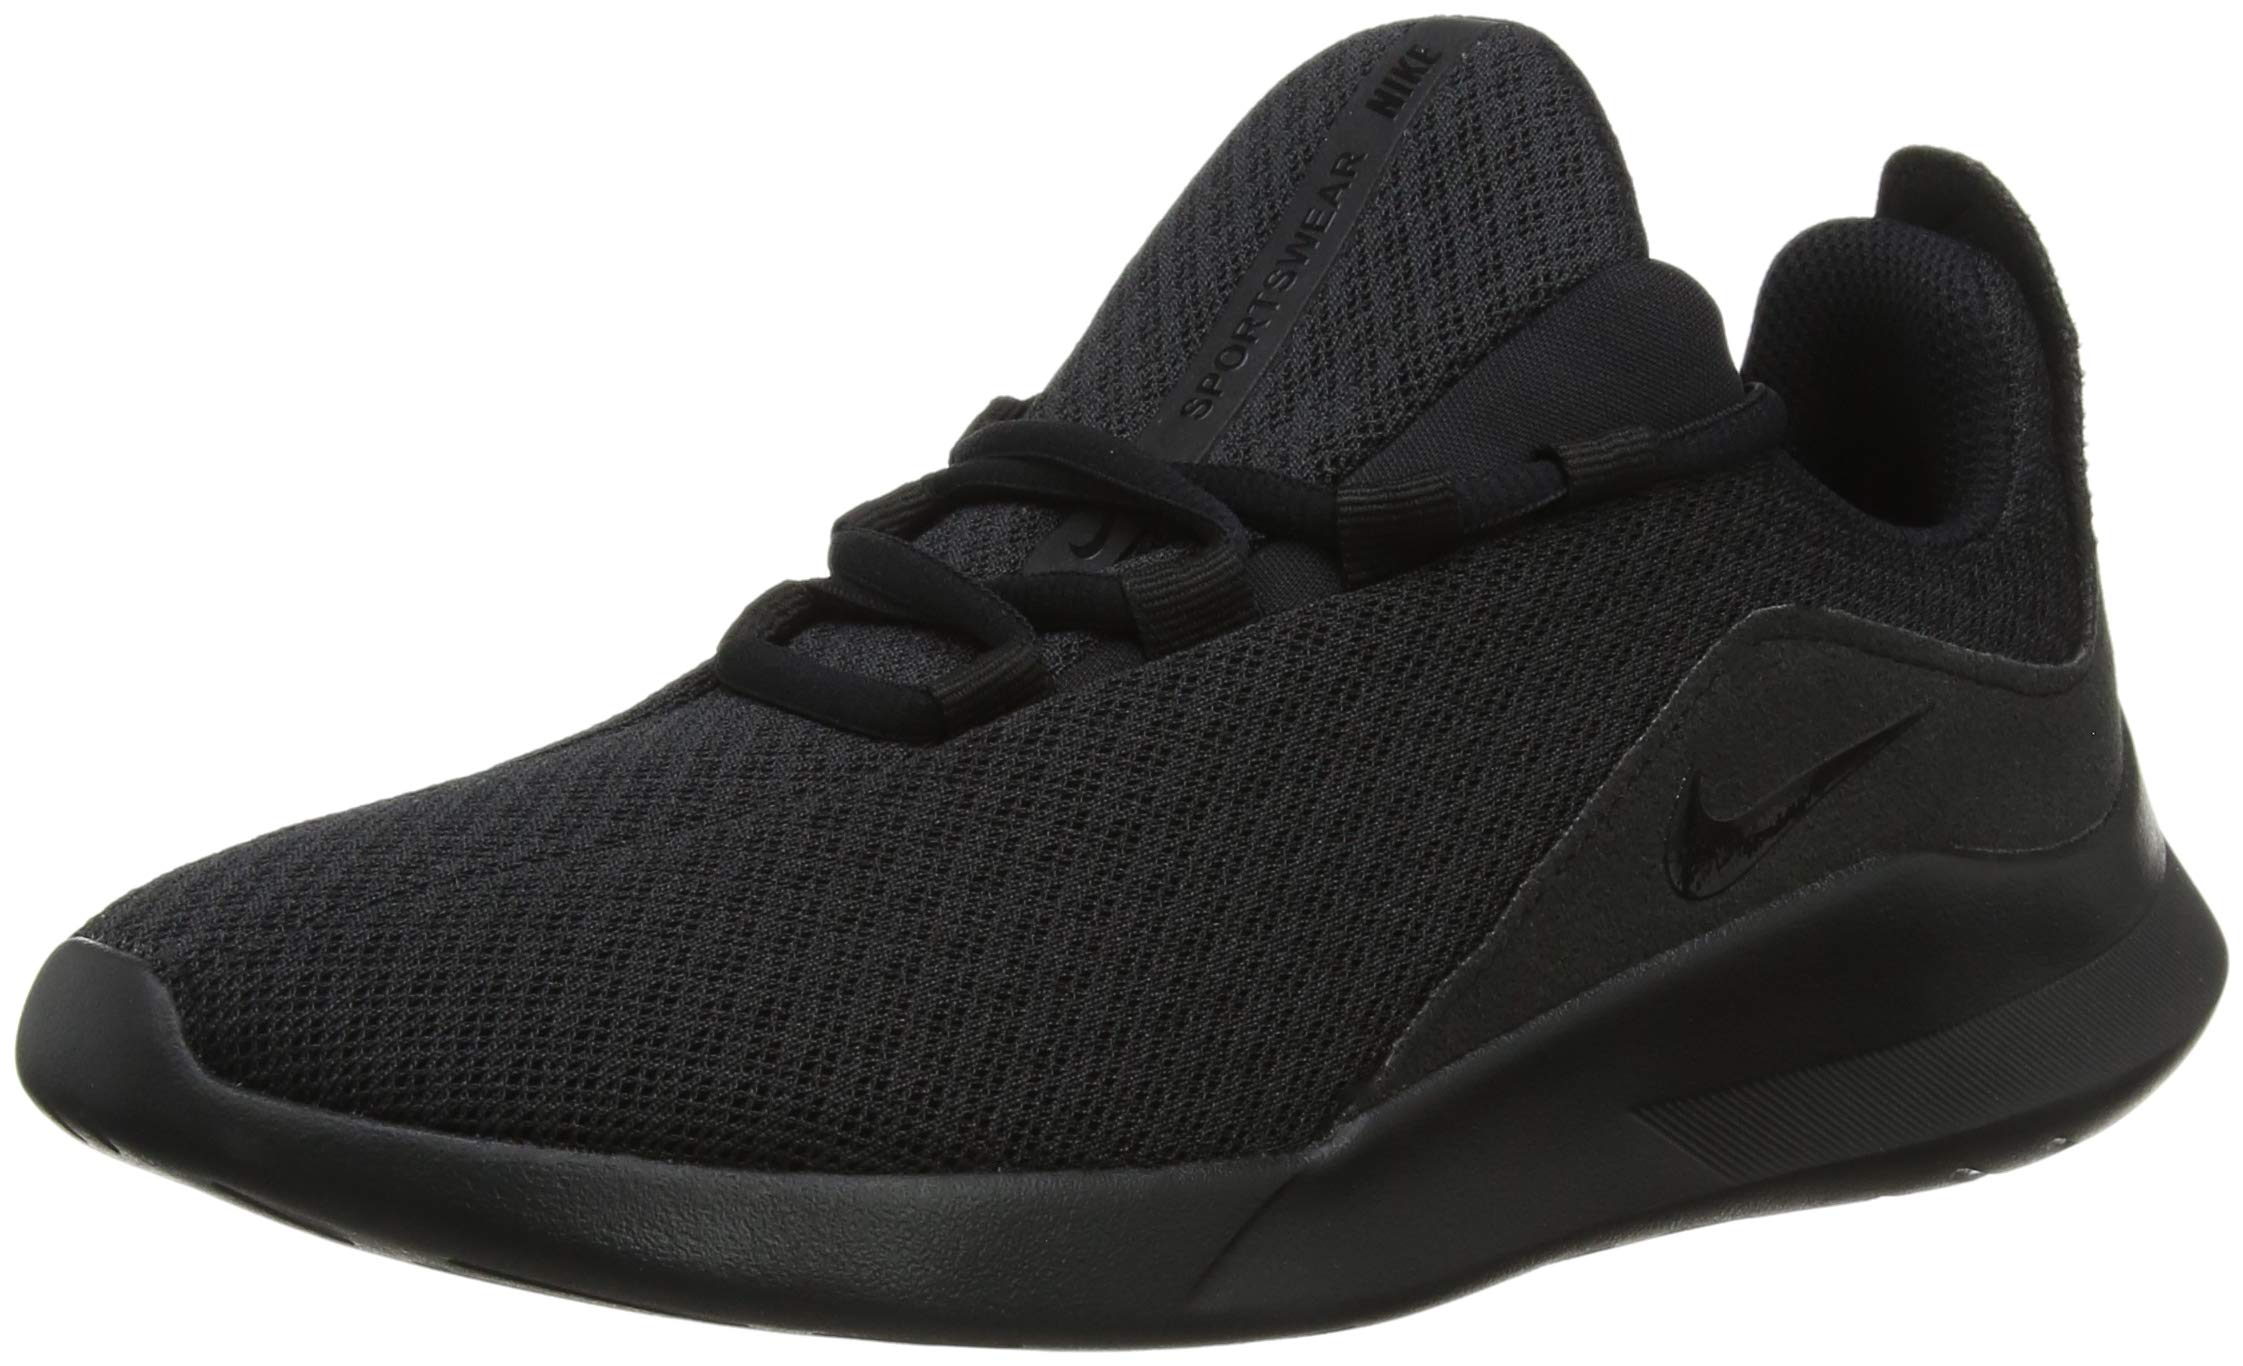 Galleon - NIKE Womens Womens Nike Viale Athletic Shoe, Blackblack, 8.5  Regular US